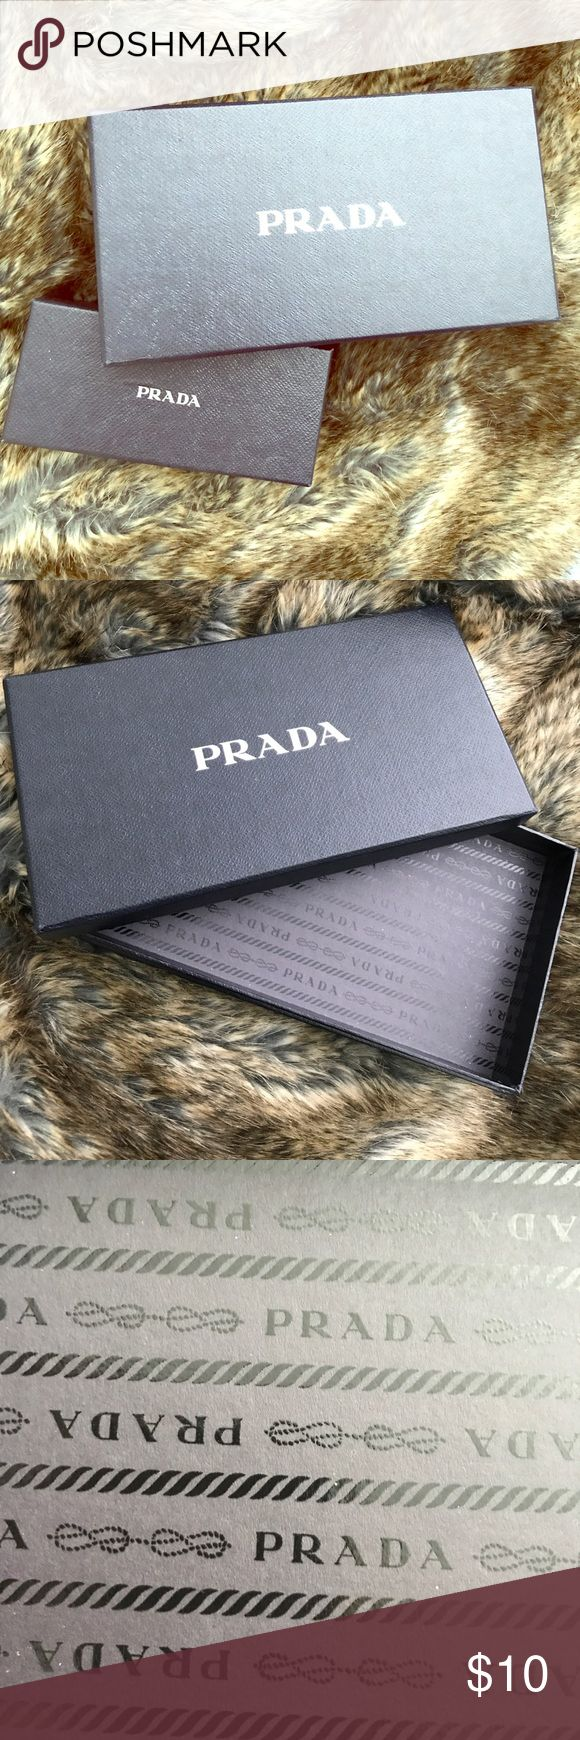 PRADA Authentic Scarf/Gloves Box Prada scarf or gloves box. Lined in Prada print. Awesome storage box for your delicate accessories! Prada Accessories